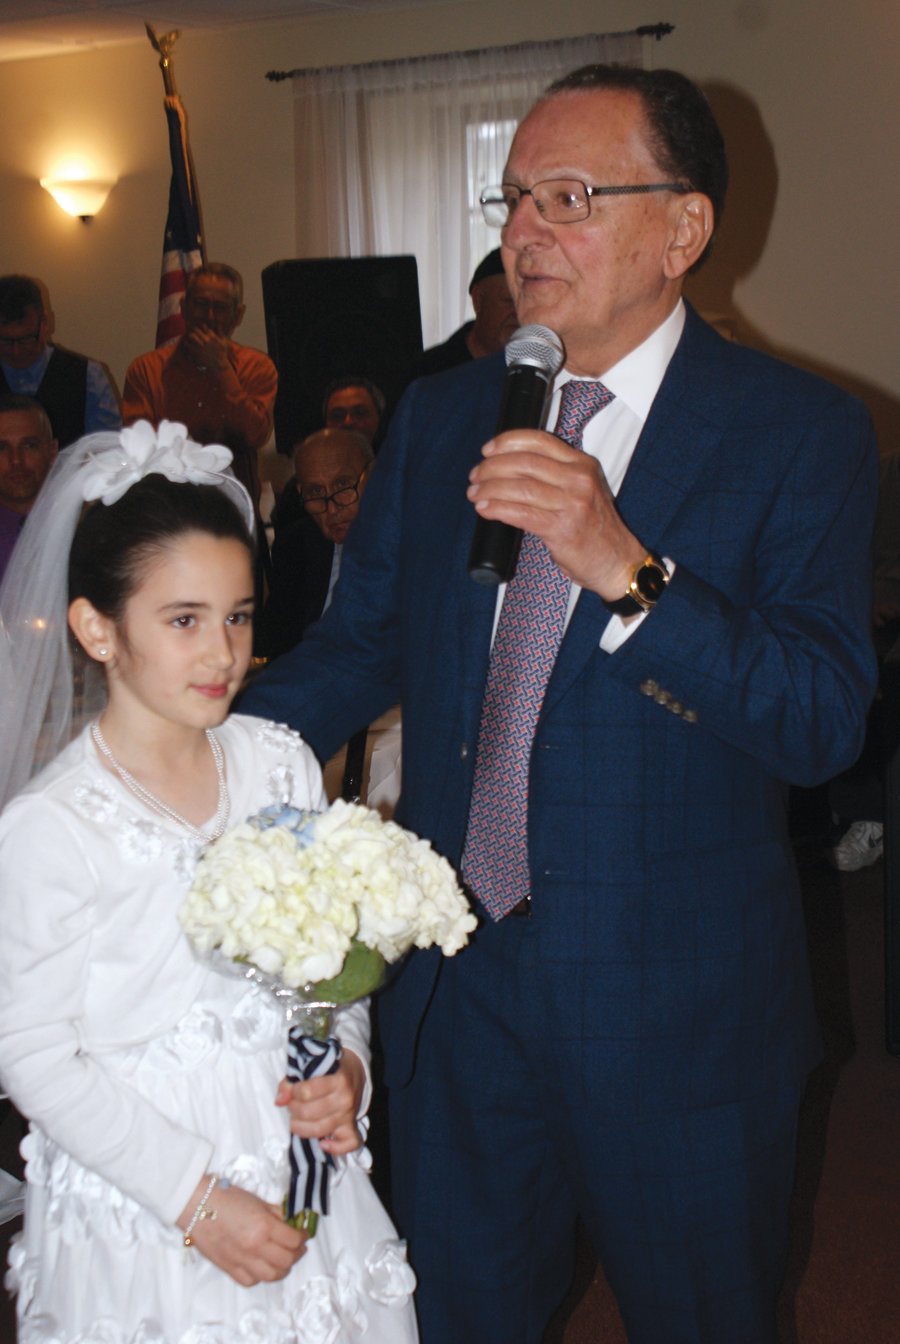 IN THE FAMILY: The keynote speaker for the event was Frank Caprio, Caroline Caprio's cousin and chief judge of Providence Municipal Court. He is pictured with his 9-year-old granddaughter, Francesca Pesce.